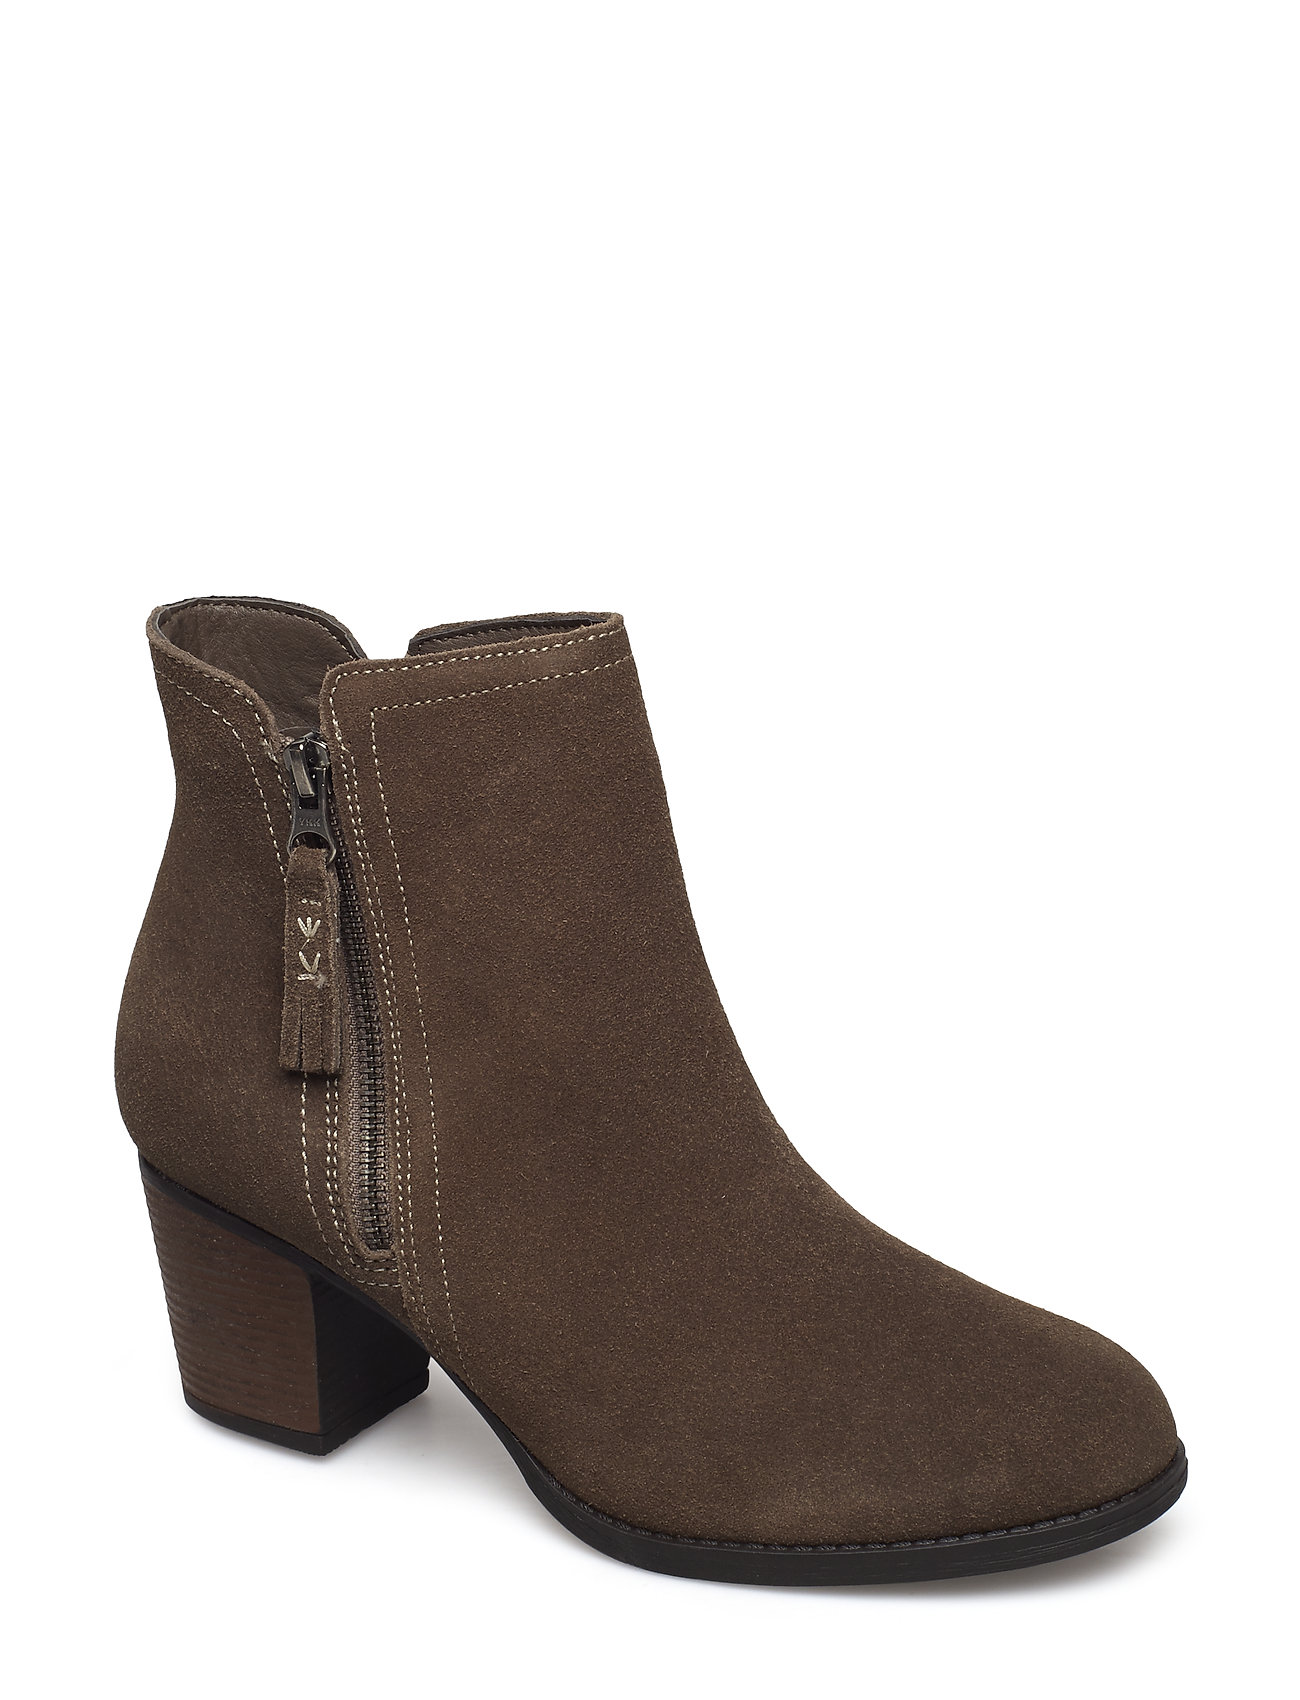 Image of Womens Taxi - Accolade Shoes Boots Ankle Boots Ankle Boot - Heel Brun Skechers (3448148455)